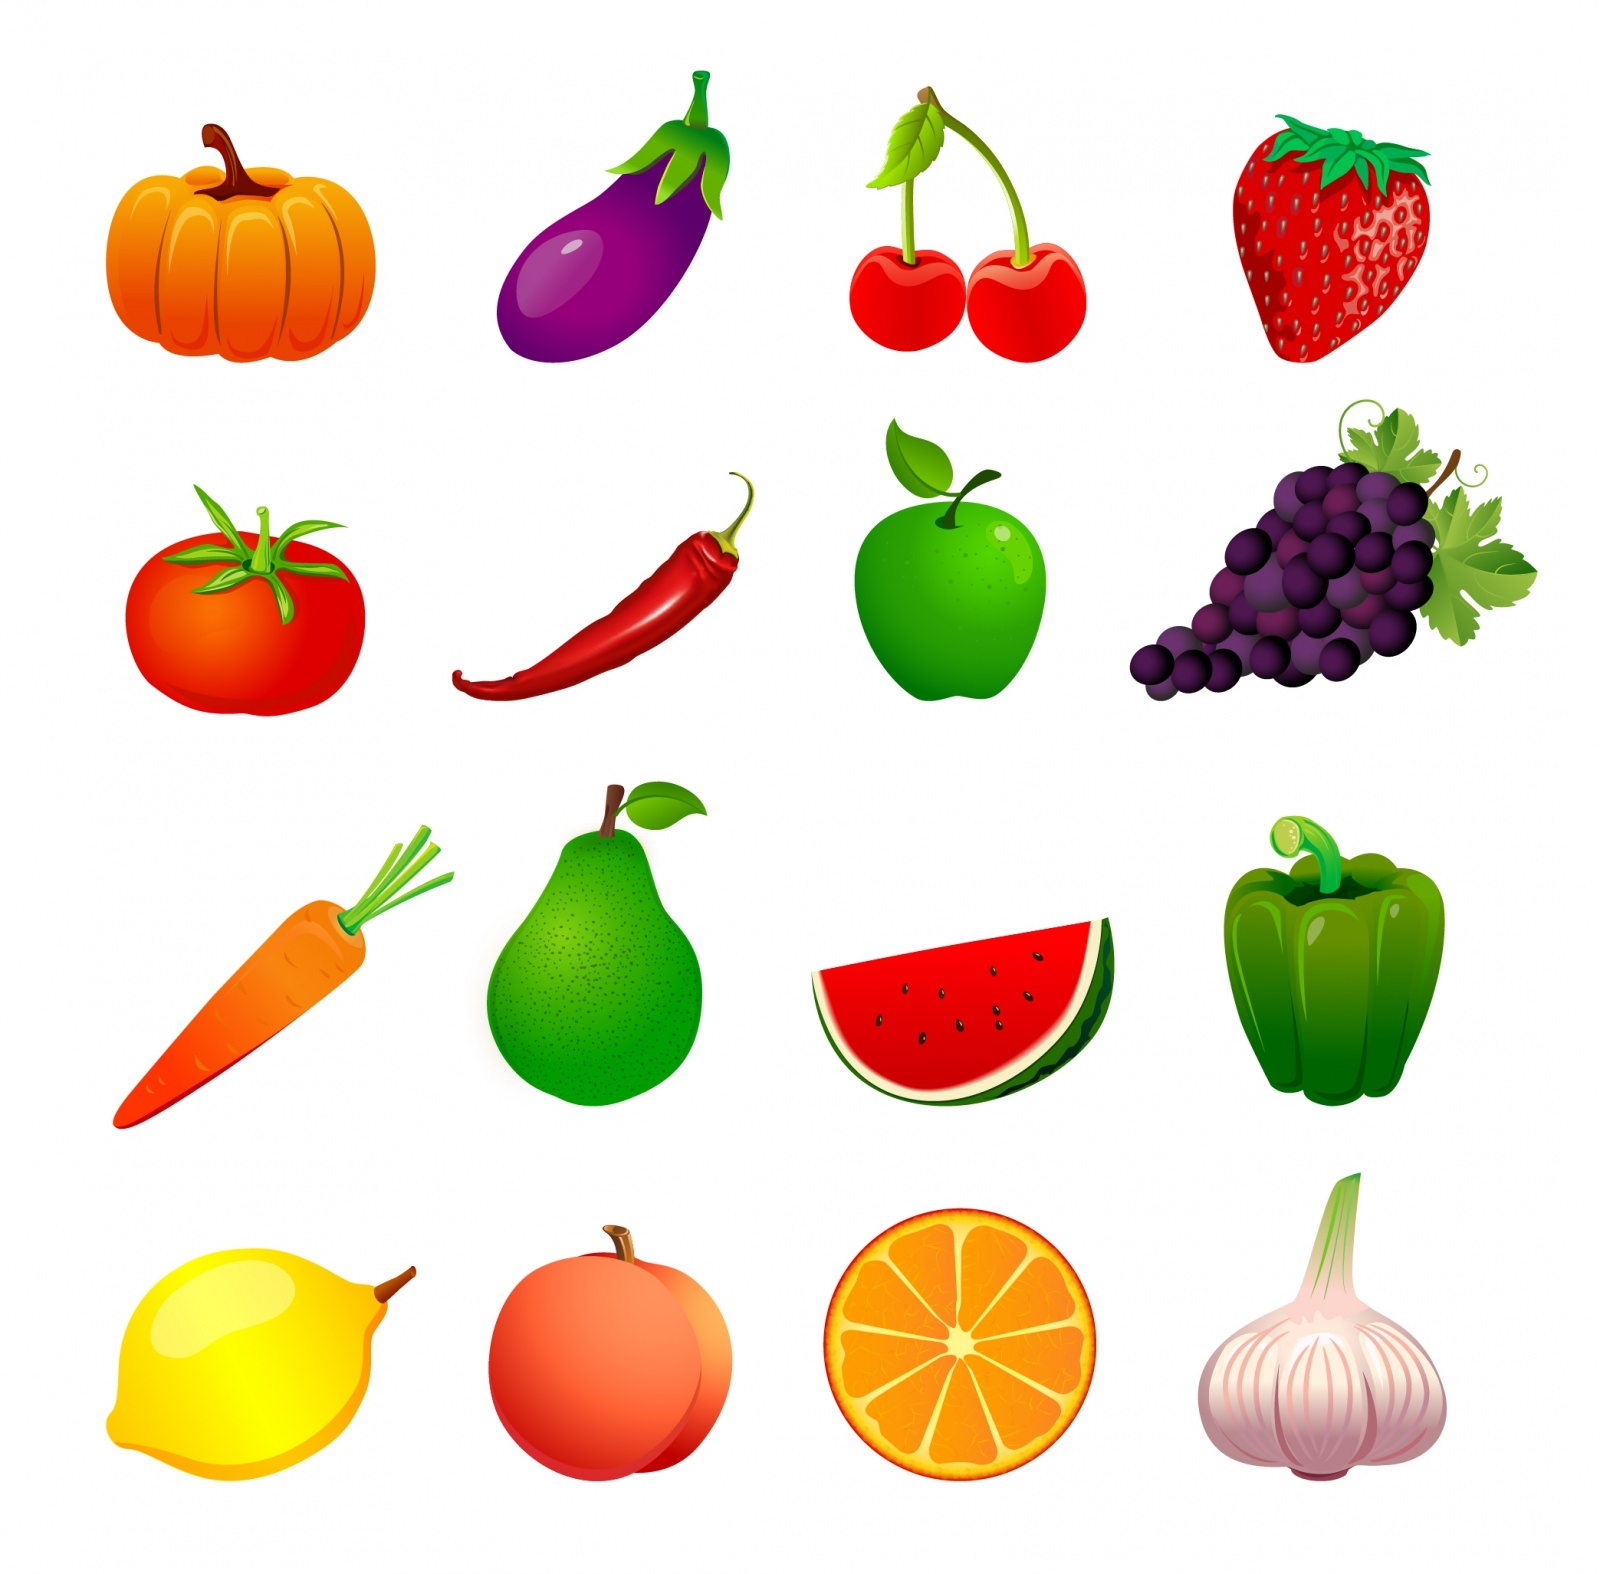 Download 50+ Free Vector Fruits & Vegetables Icons